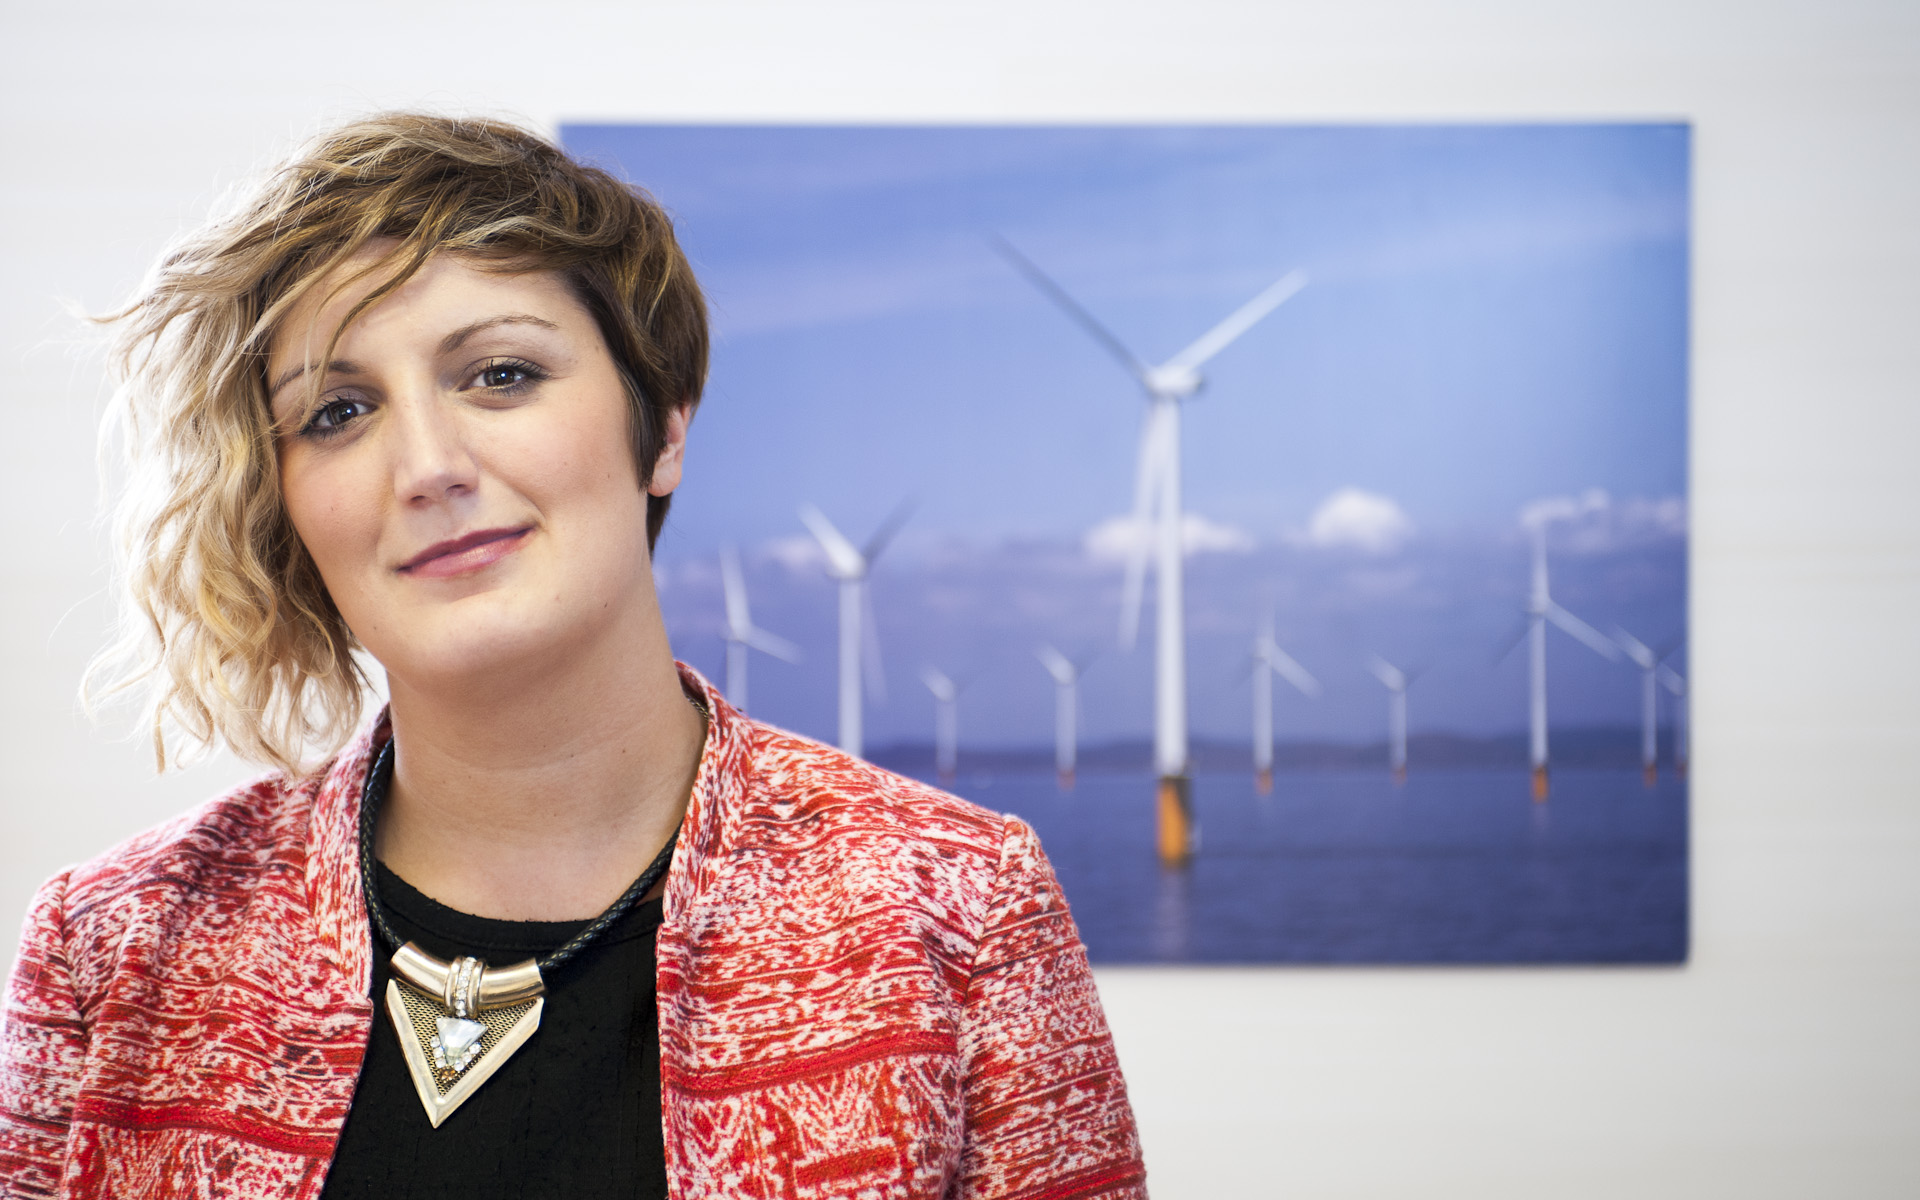 portrait of woman in front of picture of wind turbines